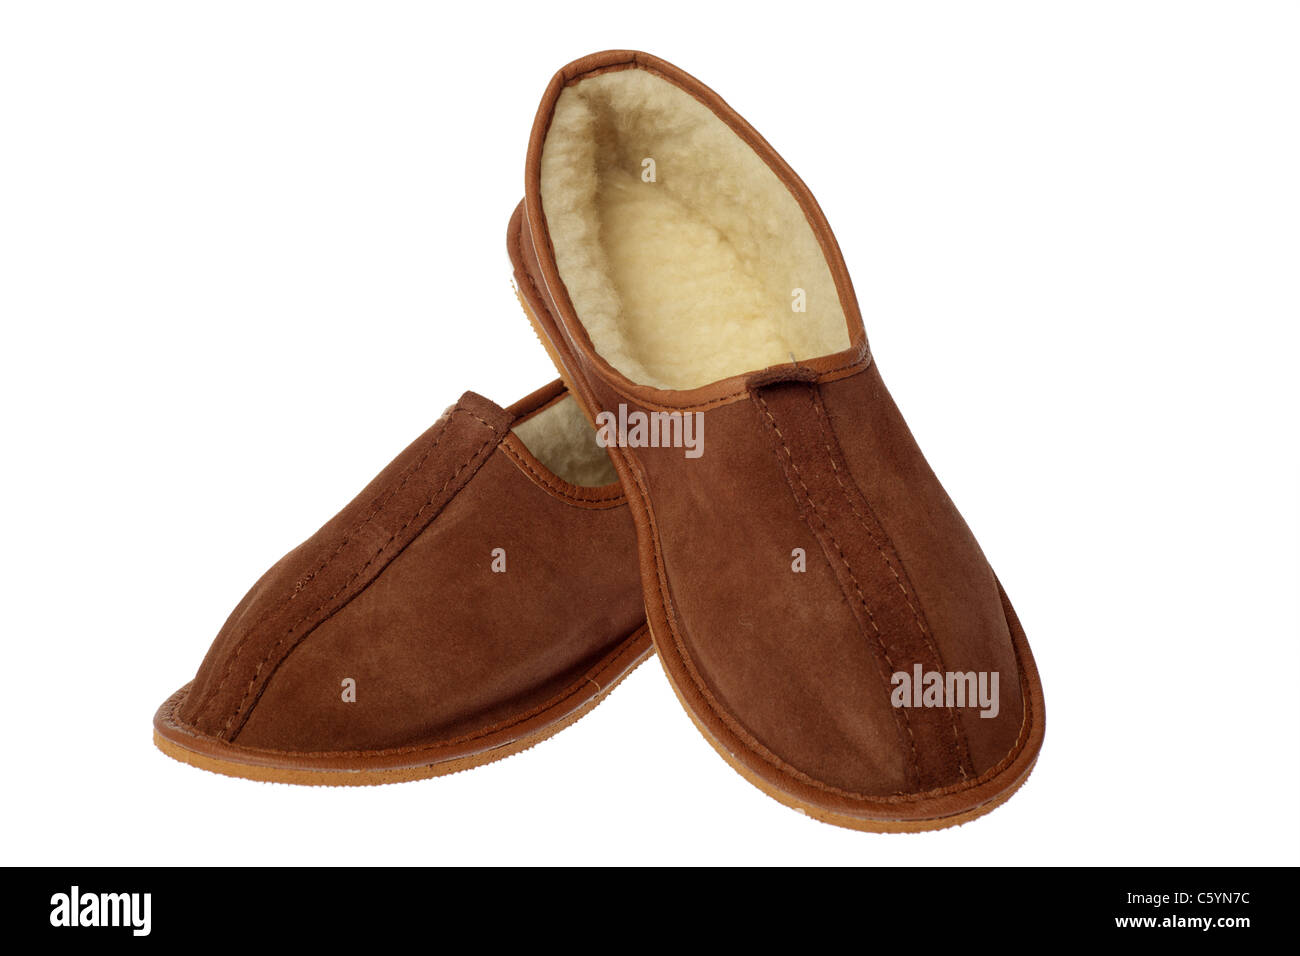 1b20b015b01 isolated brown wool comfortable slippers Stock Photo  38103392 - Alamy